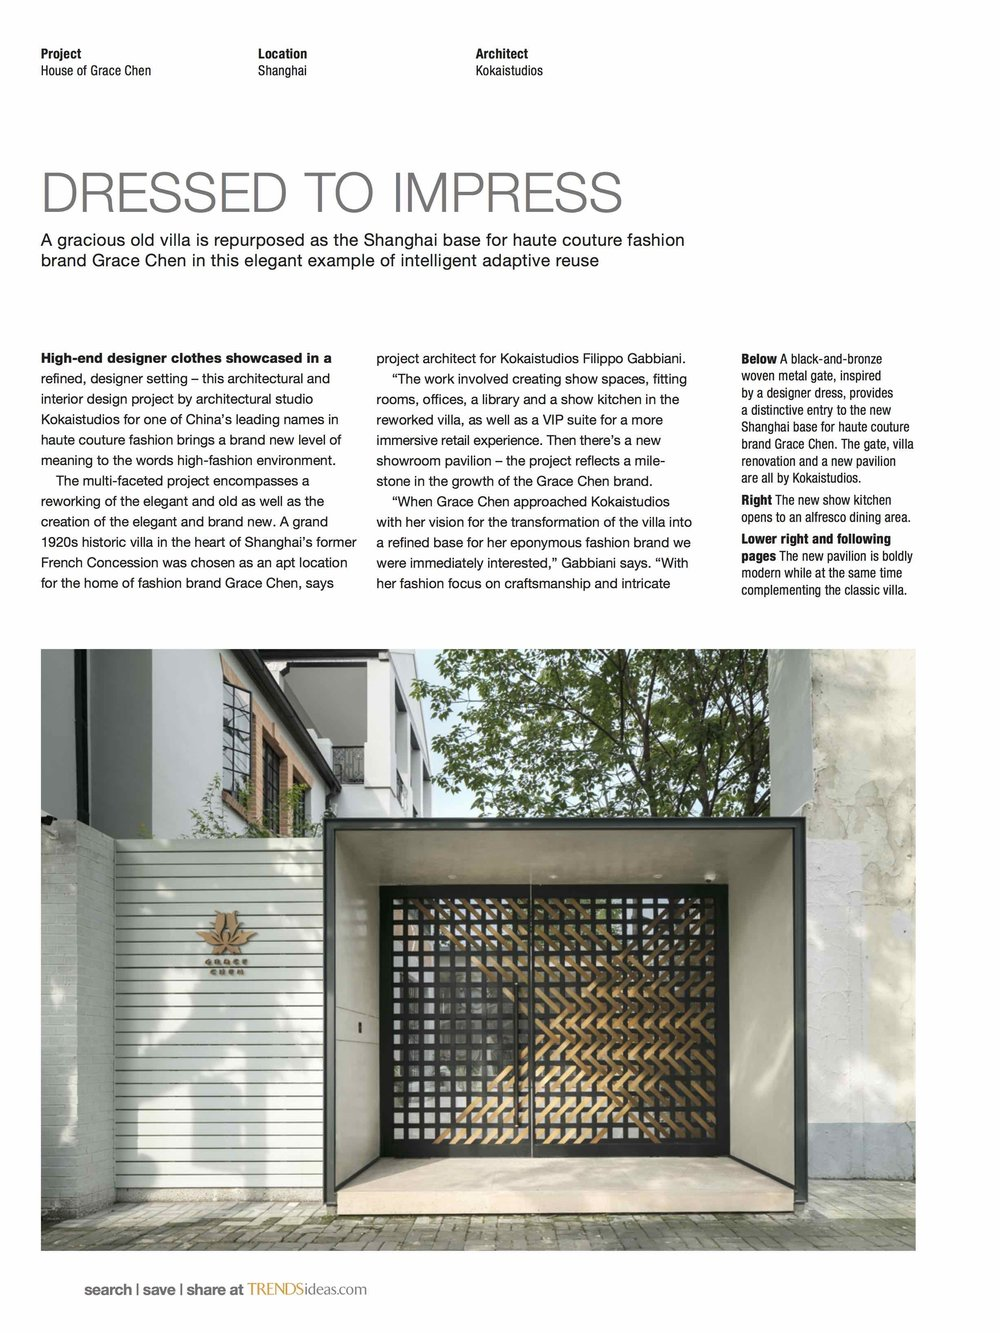 Trends Commercial Design | October 2017 - House of Grace Chen / Kokaistudios